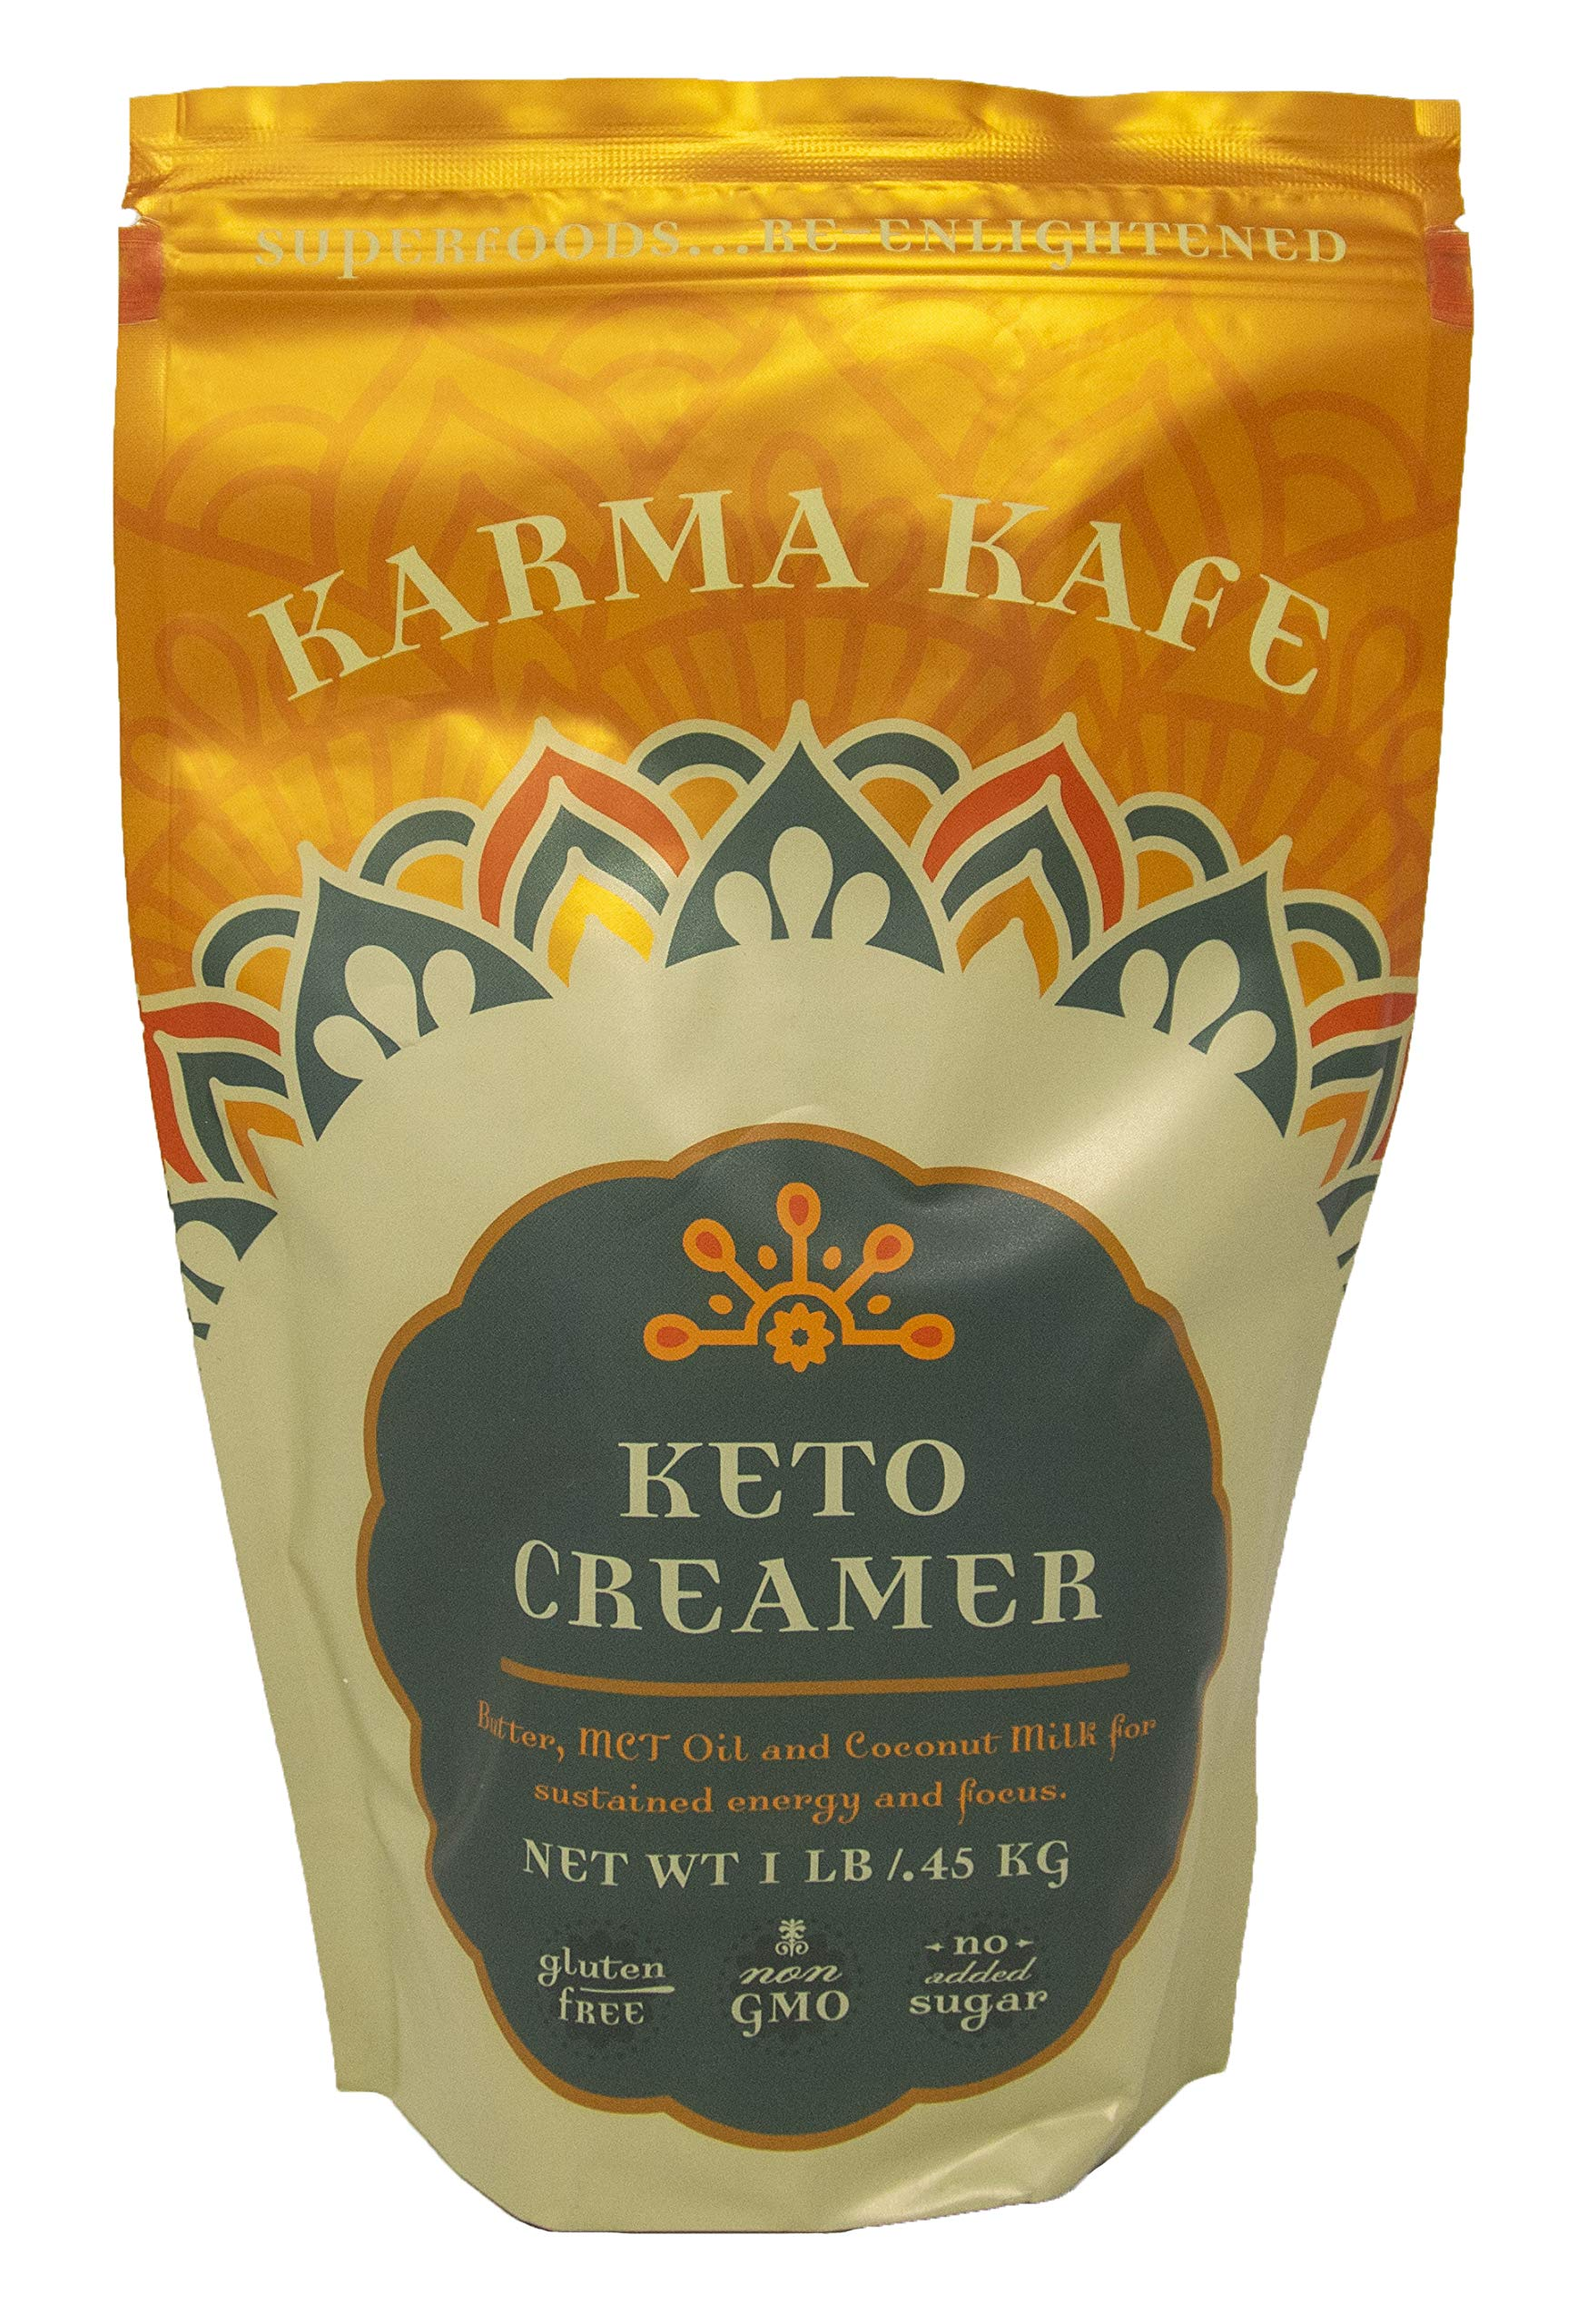 Karma Kafe Keto Creamer with MCT oil, Coconut Milk, Butter, High Fat BPC Coffee Creamer Superfood - 1 Pound Resealable Package